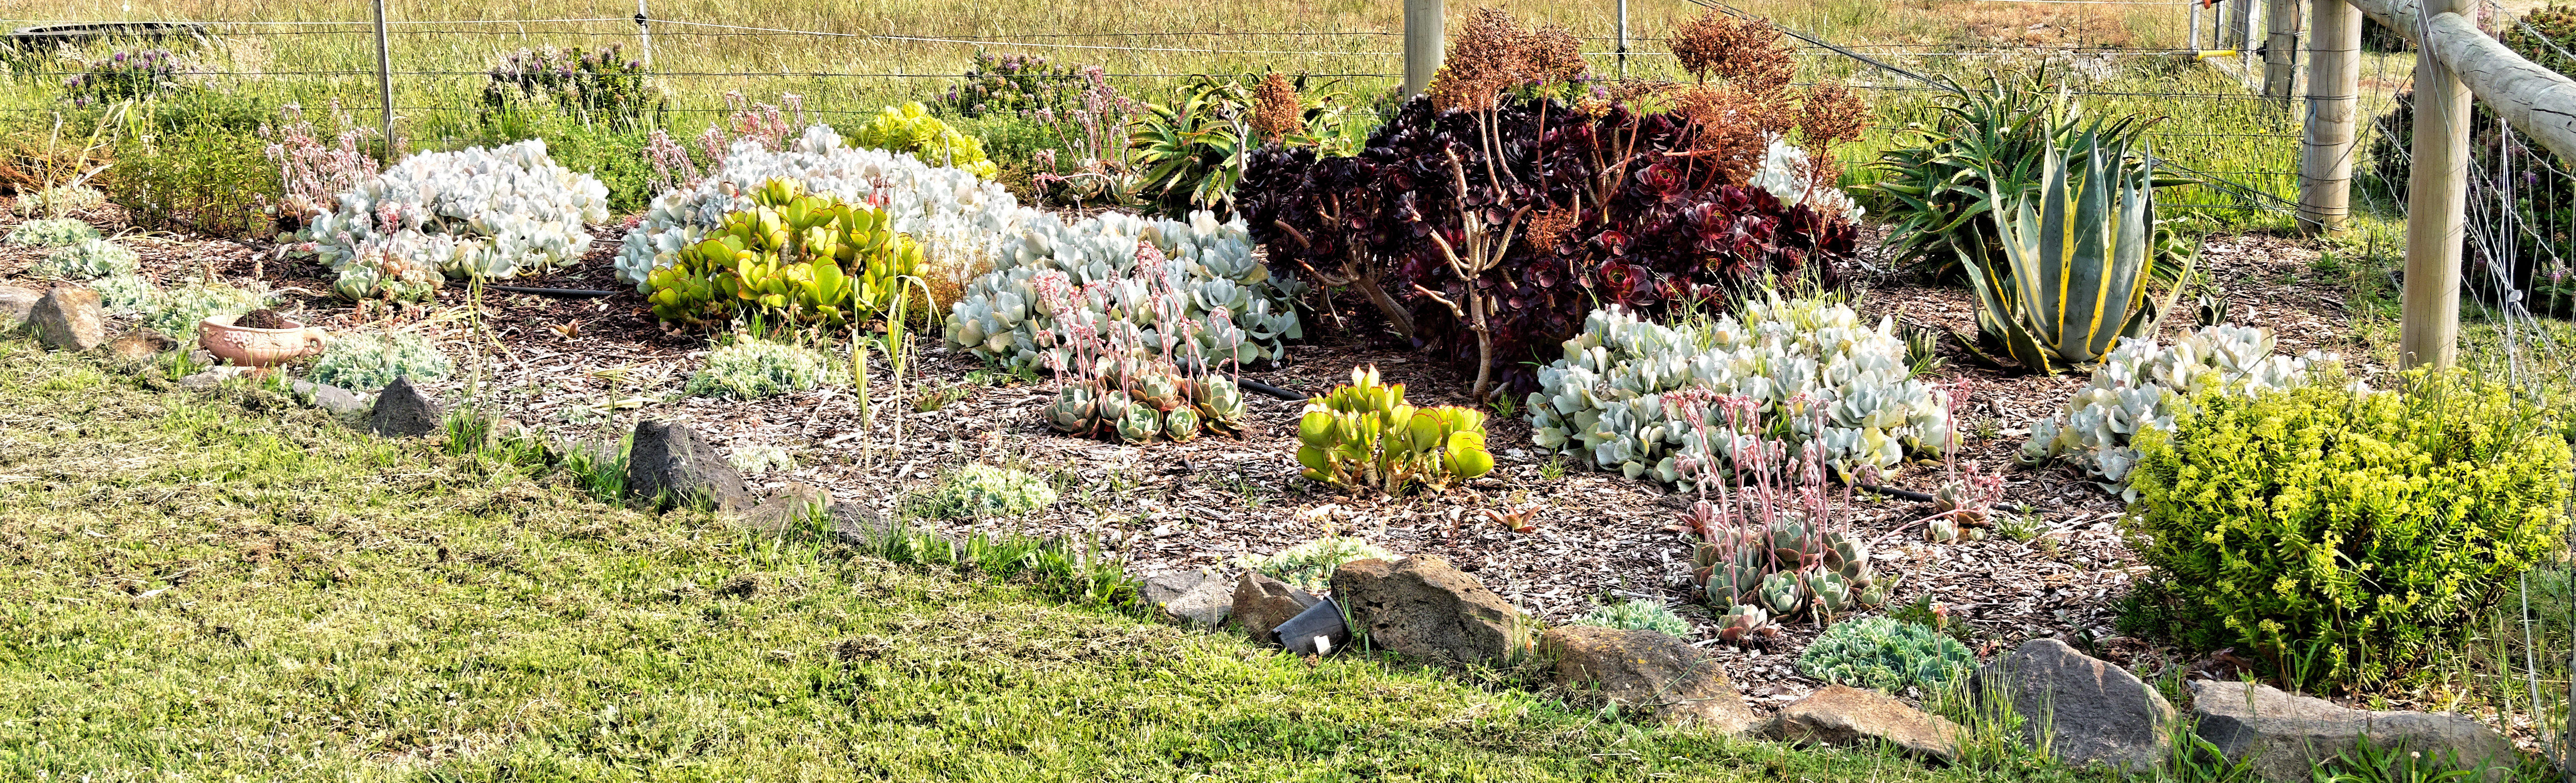 This should be Succulent-garden-1-detail.jpeg.  Is it missing?